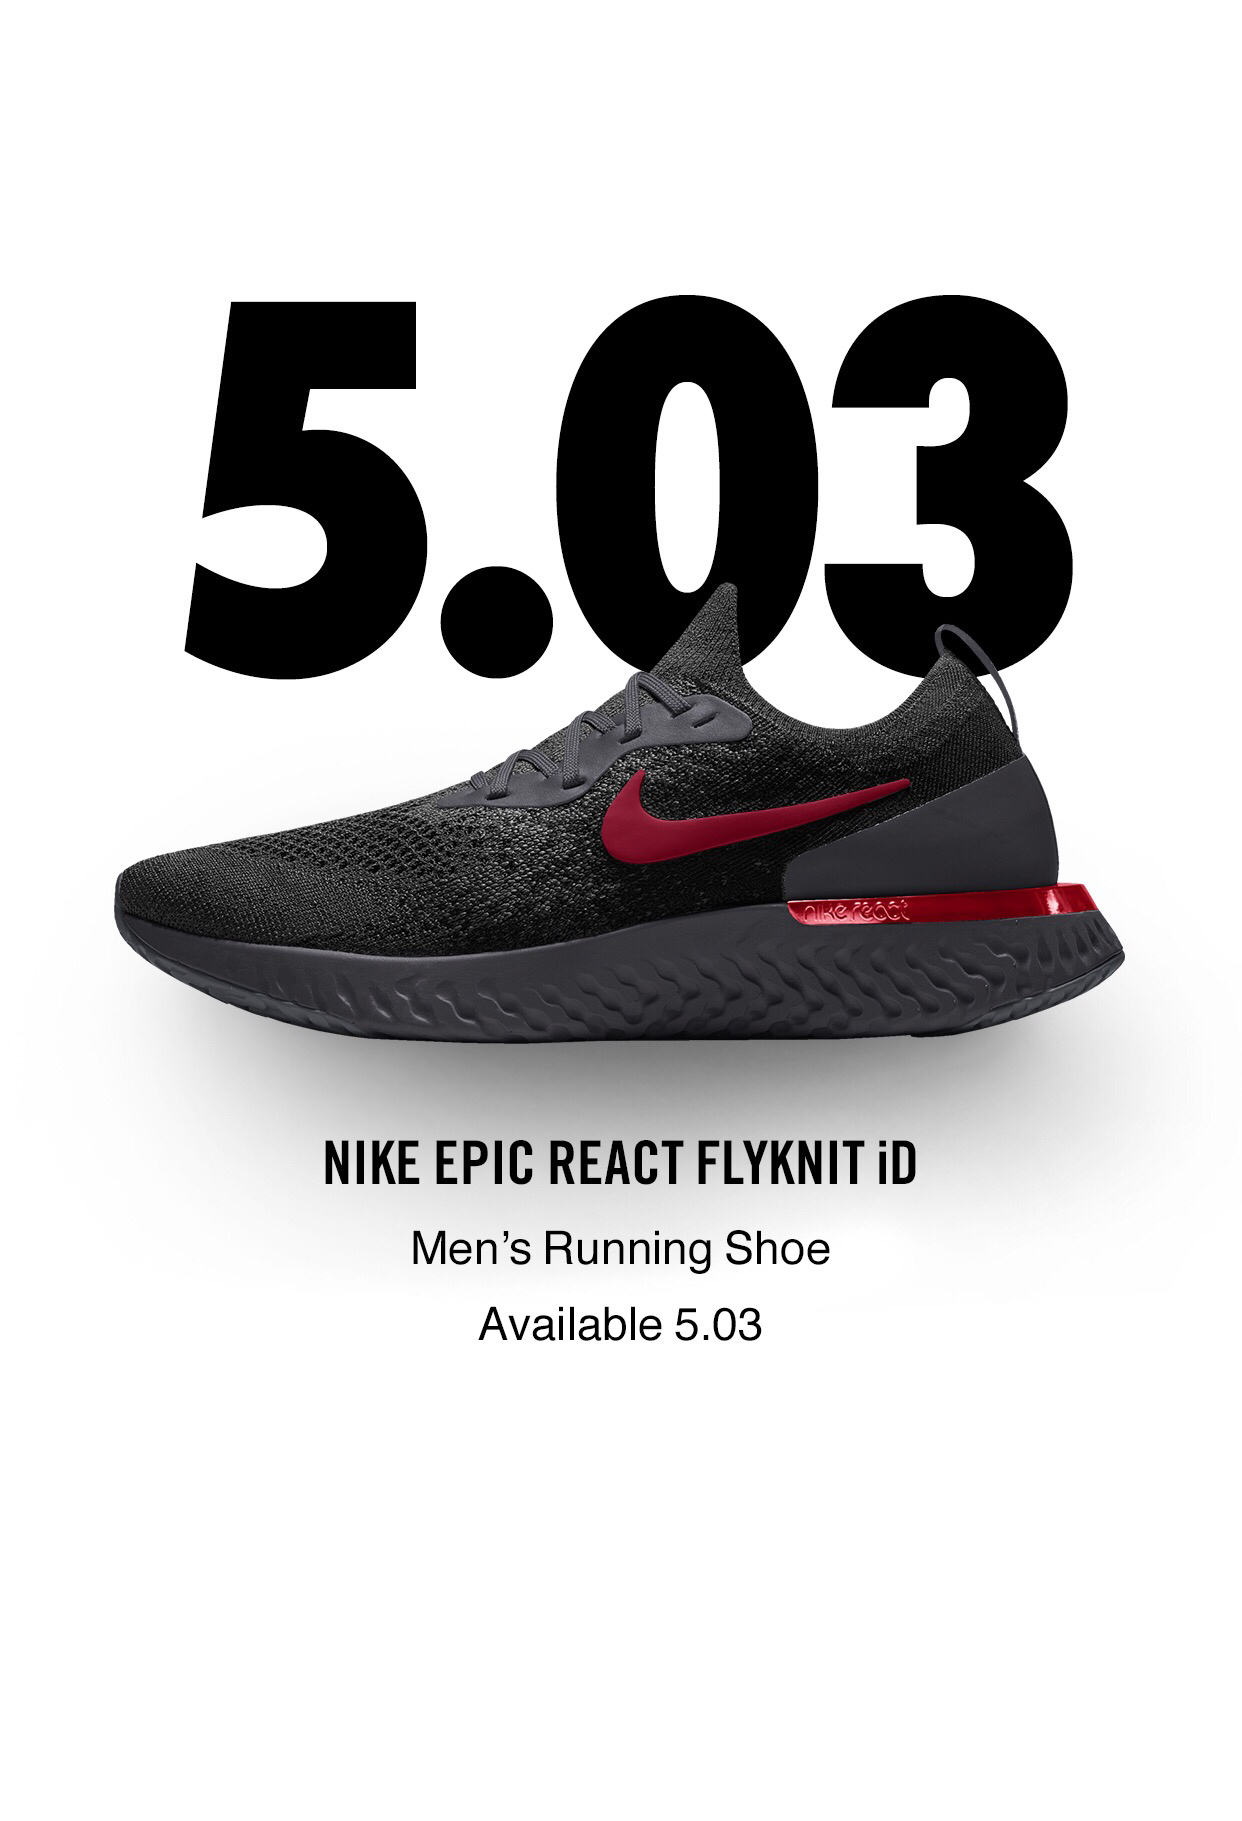 b22bc1ce2201 The Nike Epic React Flyknit is Coming to NIKEiD Tomorrow - WearTesters